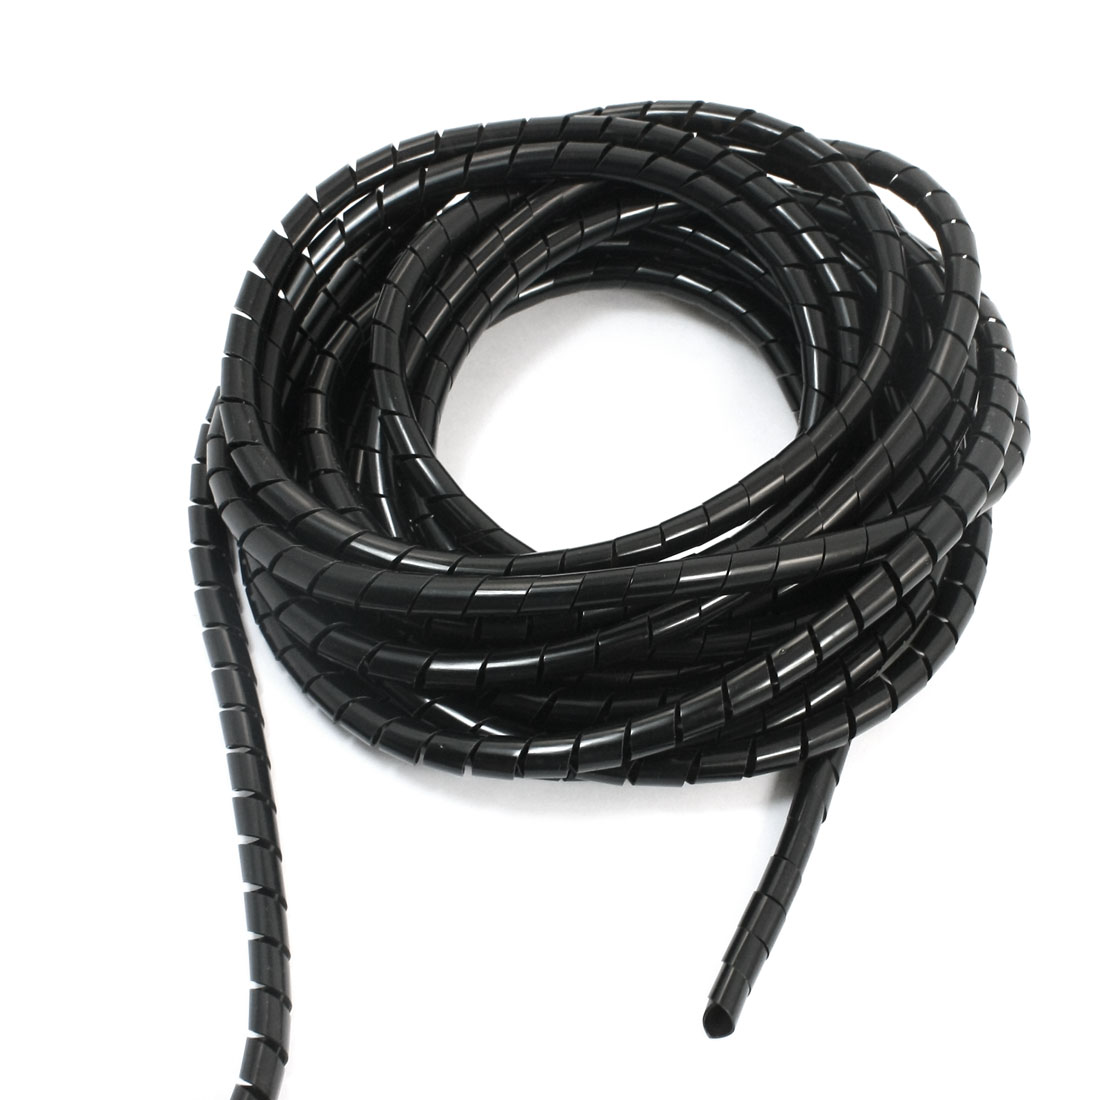 8mm x 8M Spiral Cable Wire Wrap Band Computer Manage Cord Black